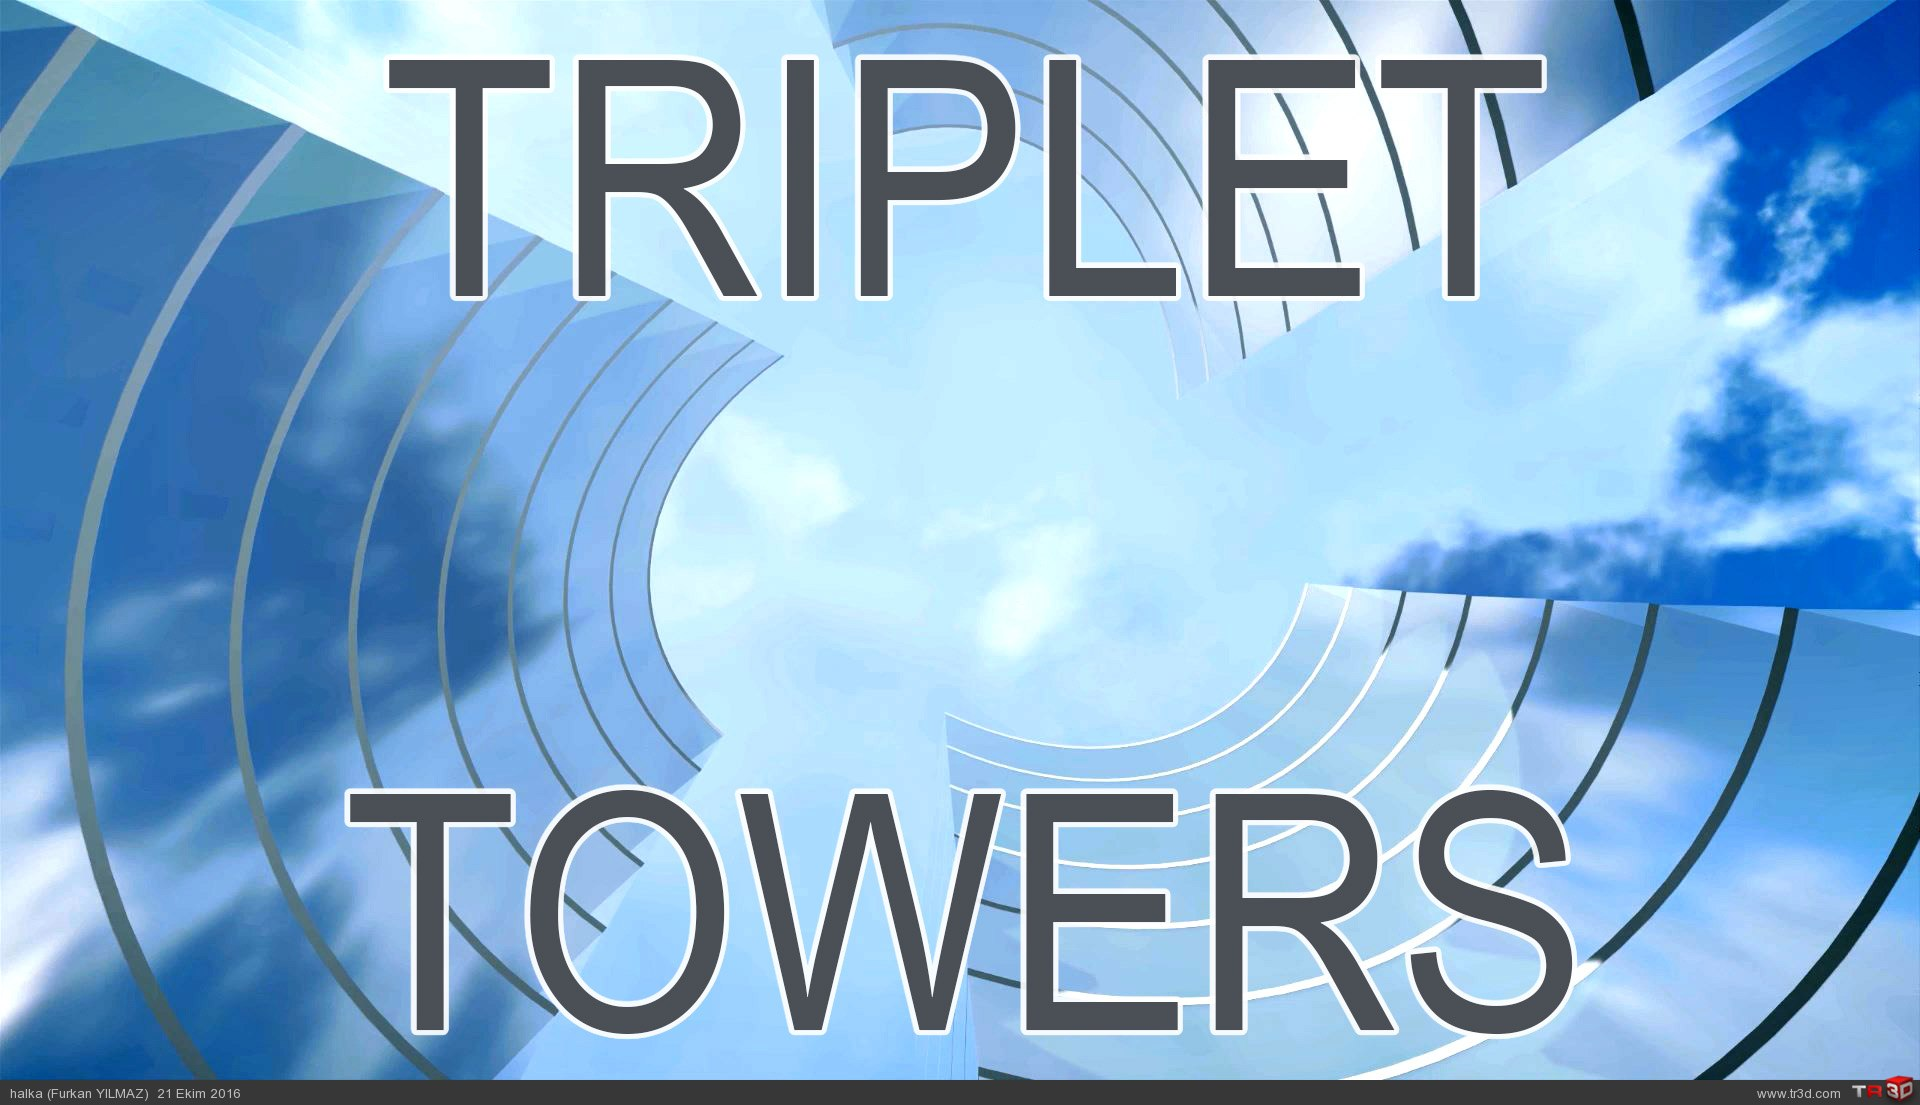 Triplet Towers